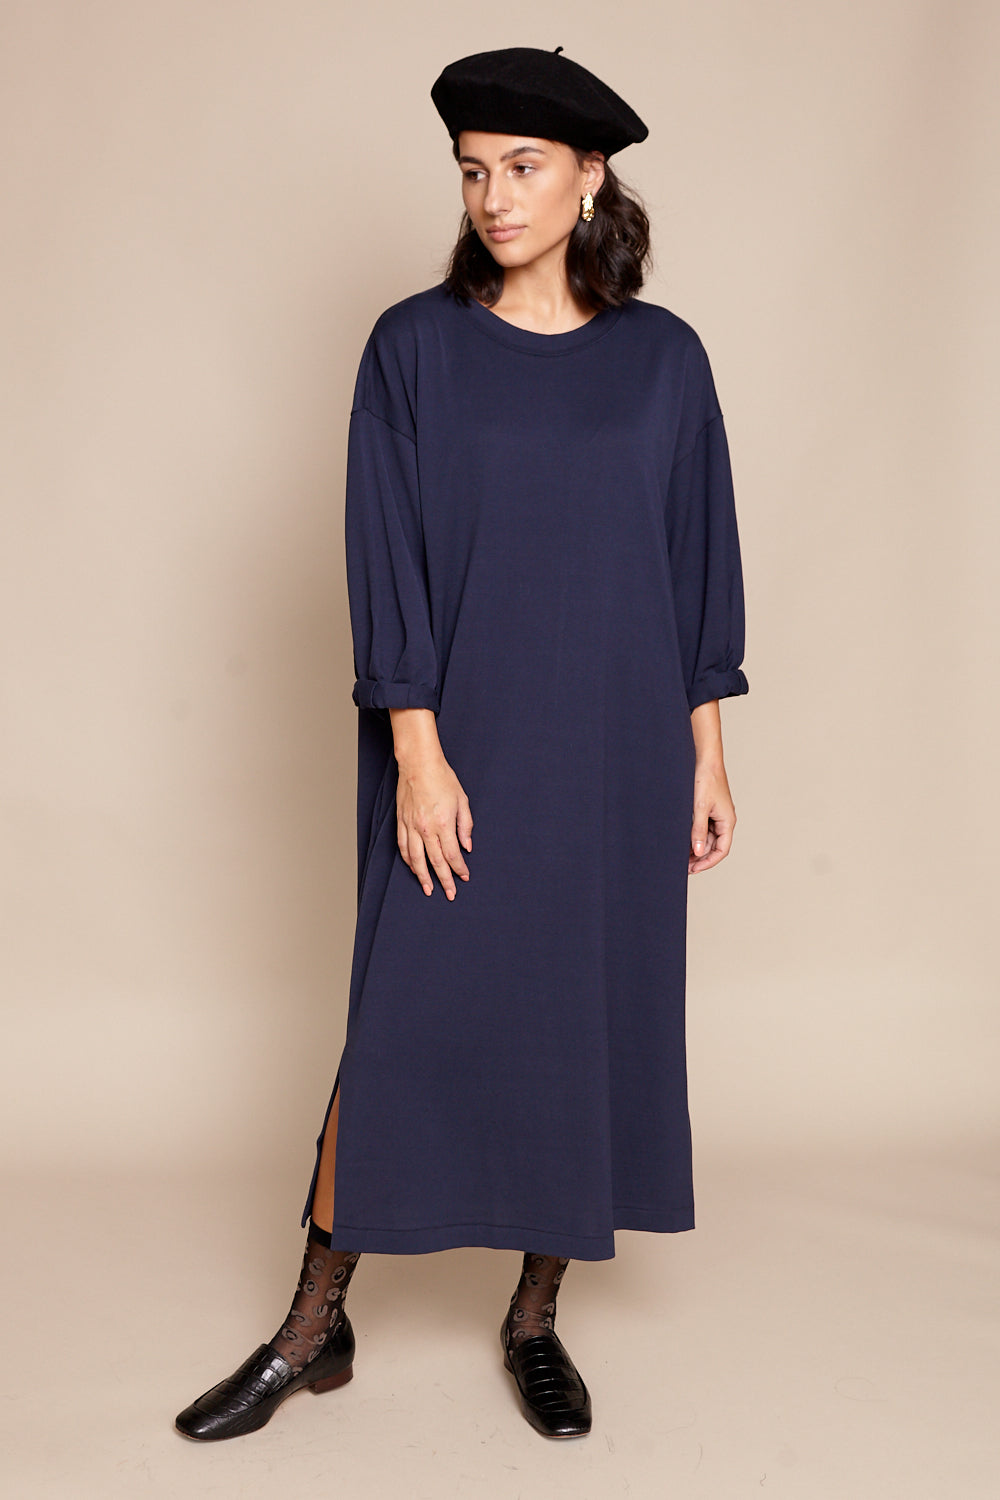 Draped Back Dress in Navy